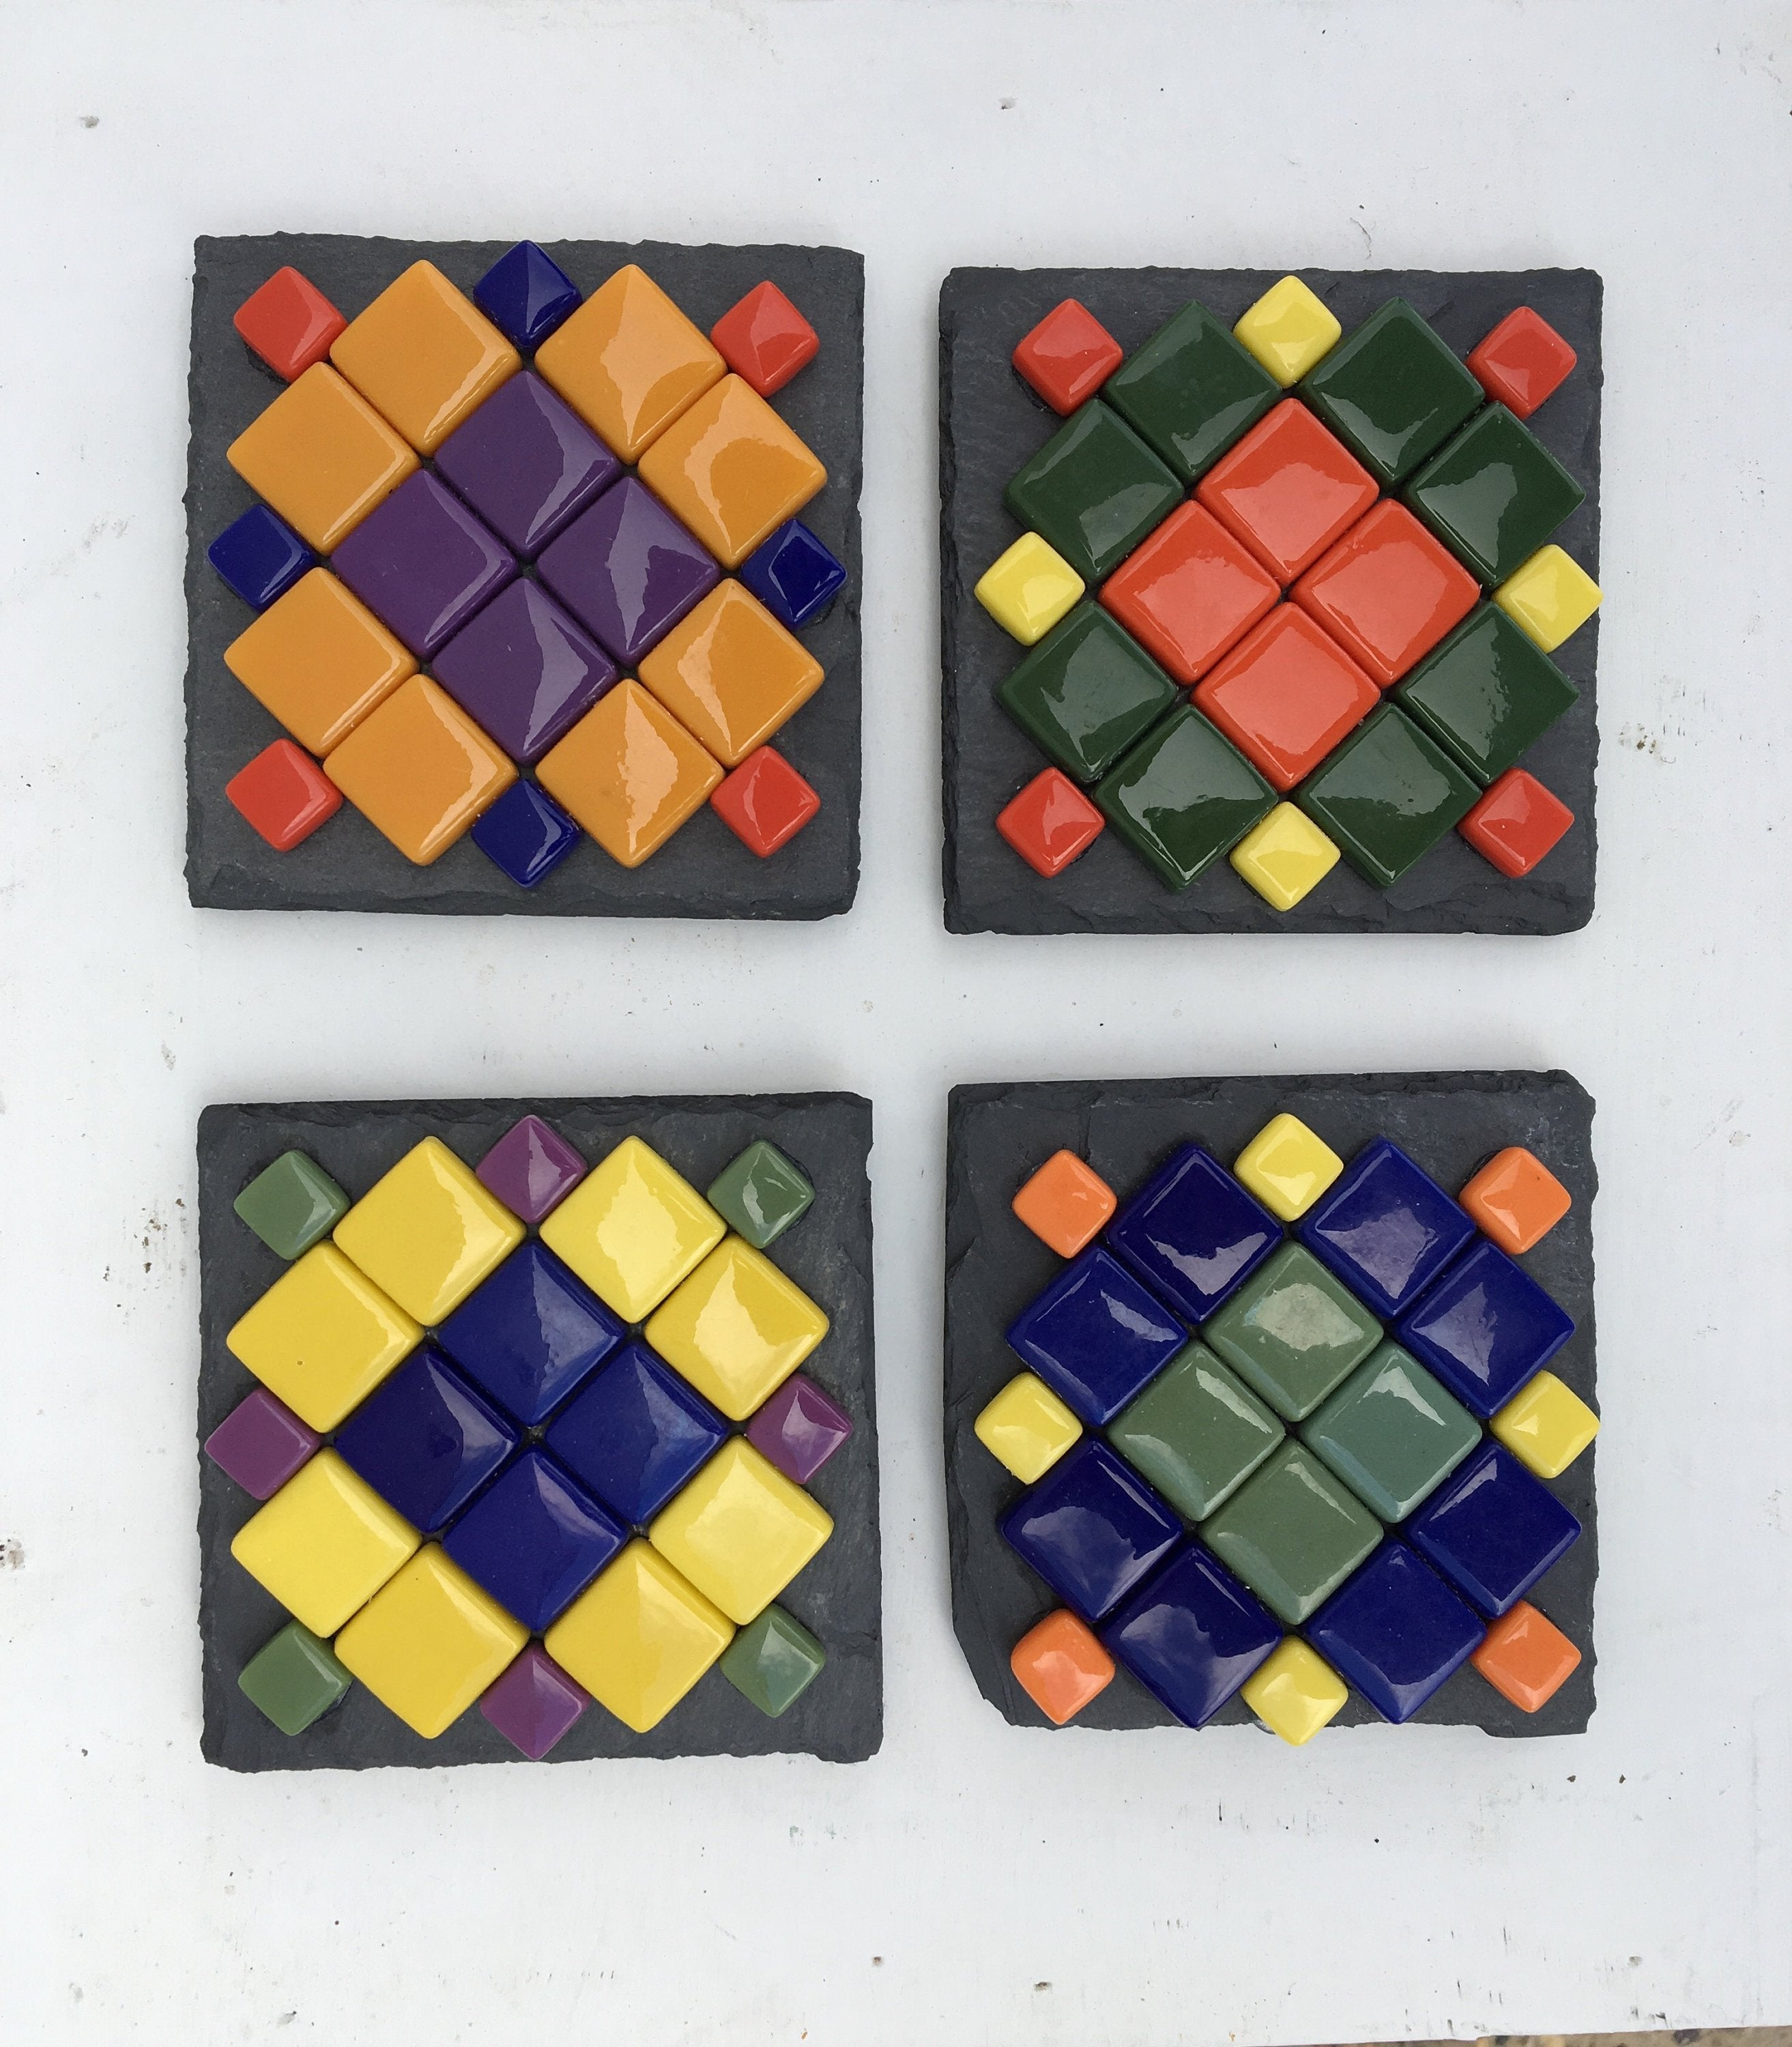 ARKA Living Colorful glass Coaster set(4) by lula Azorey, handmade colorful mosaic glass coaster